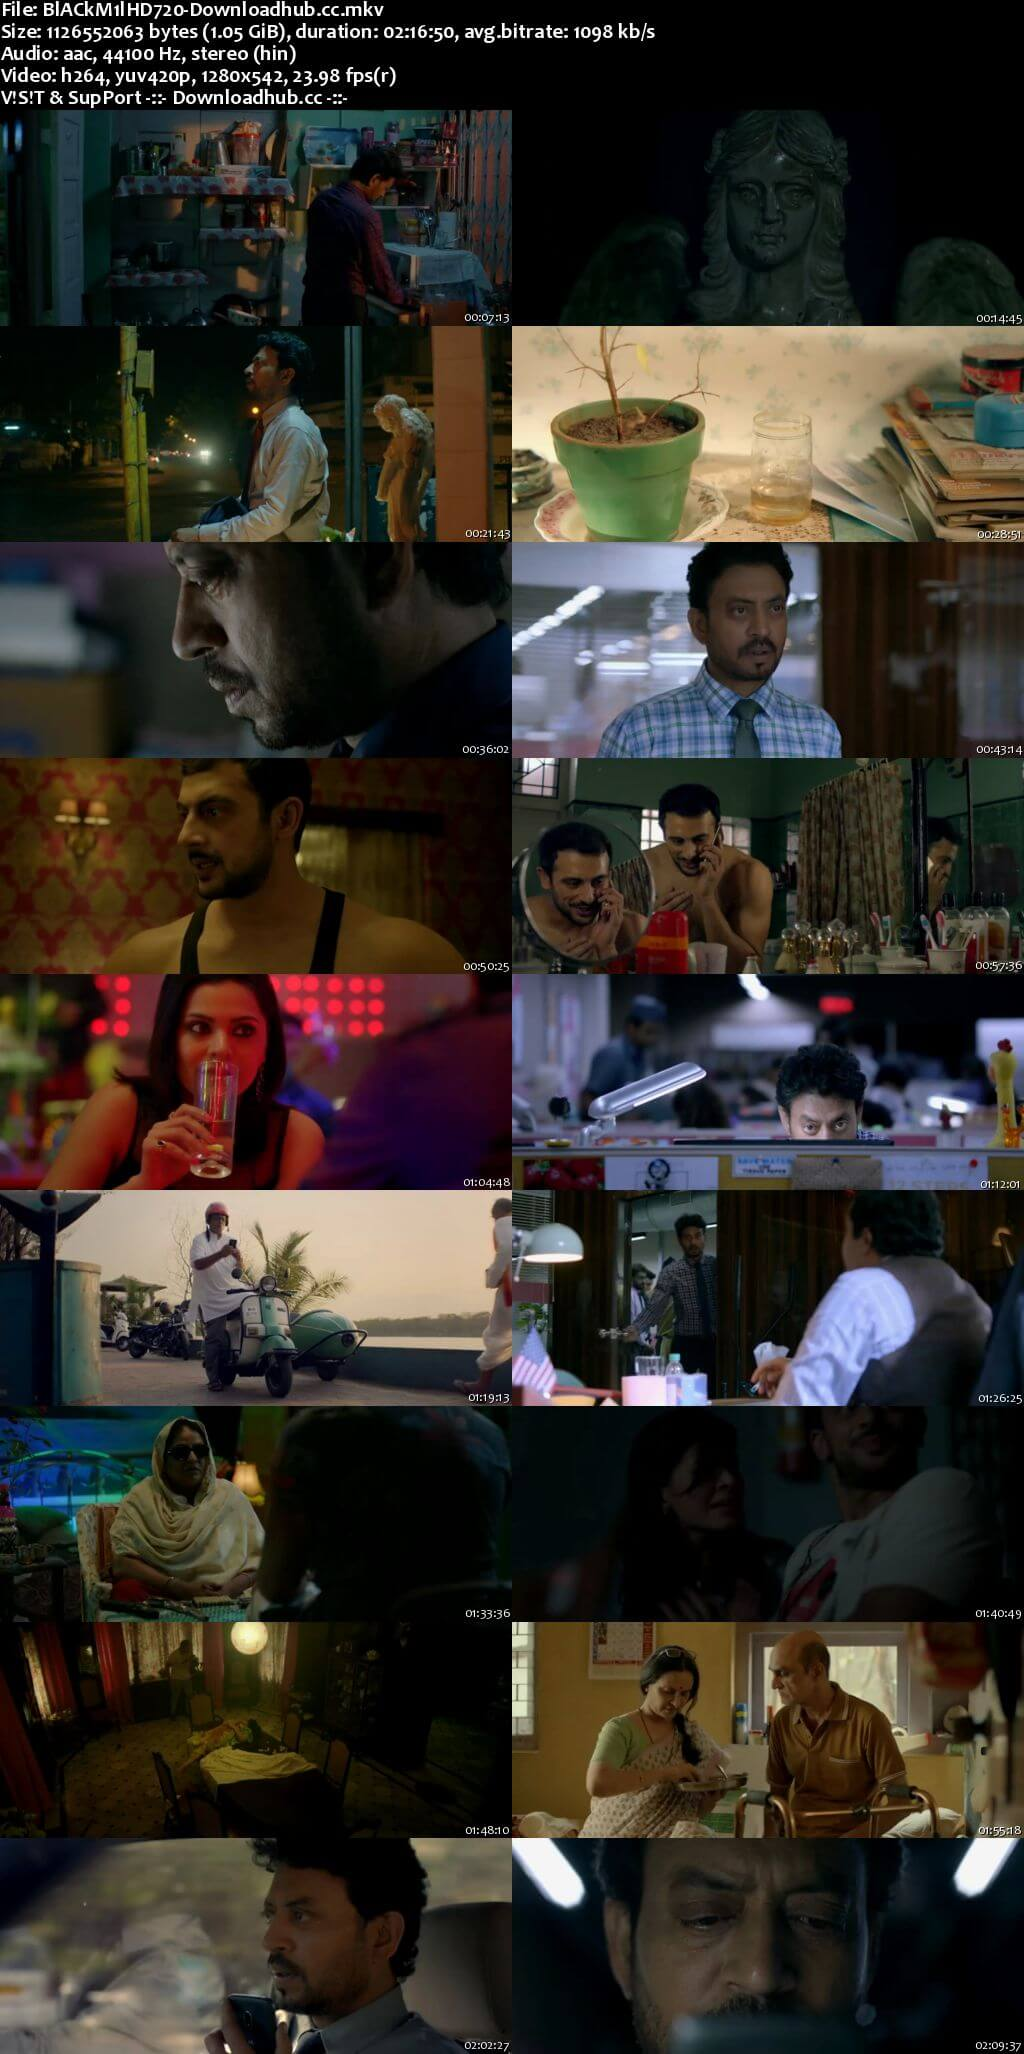 Blackmail 2018 Hindi 720p HDRip